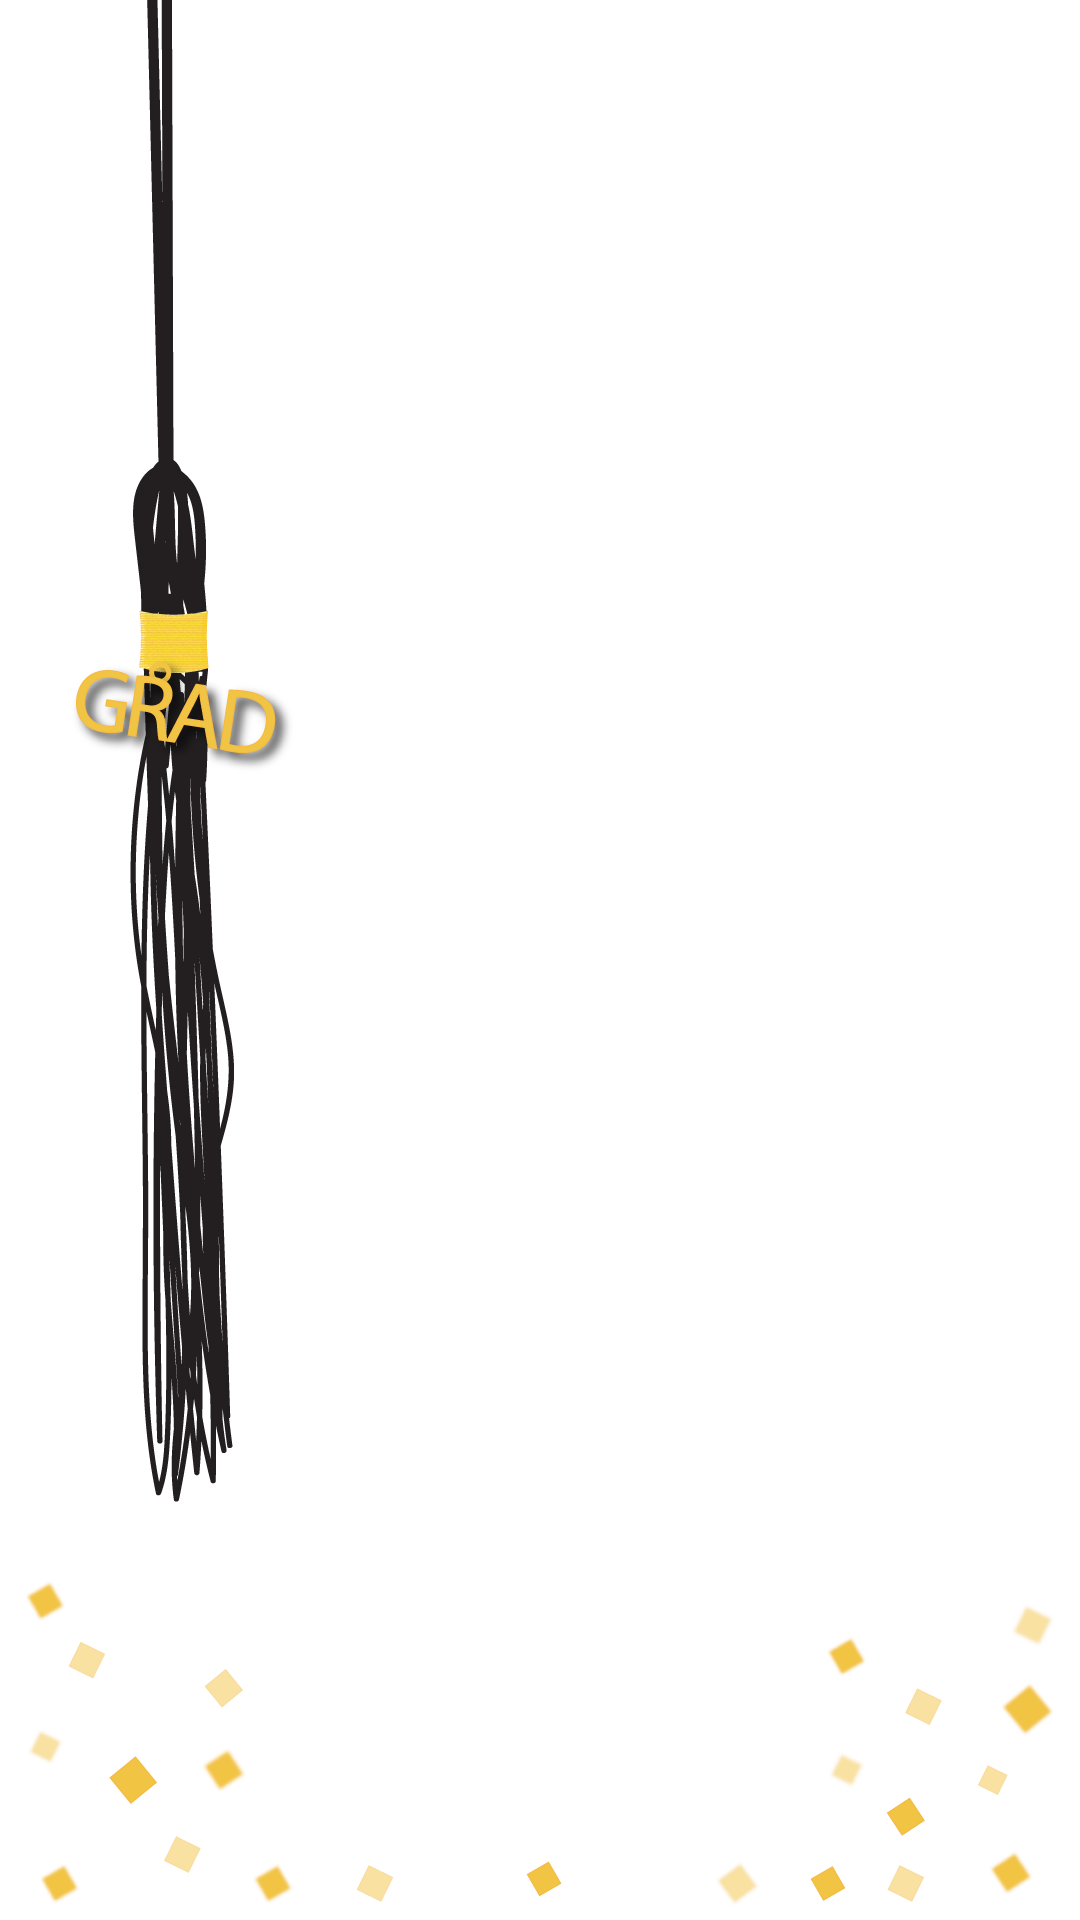 Grad Geofilter.png